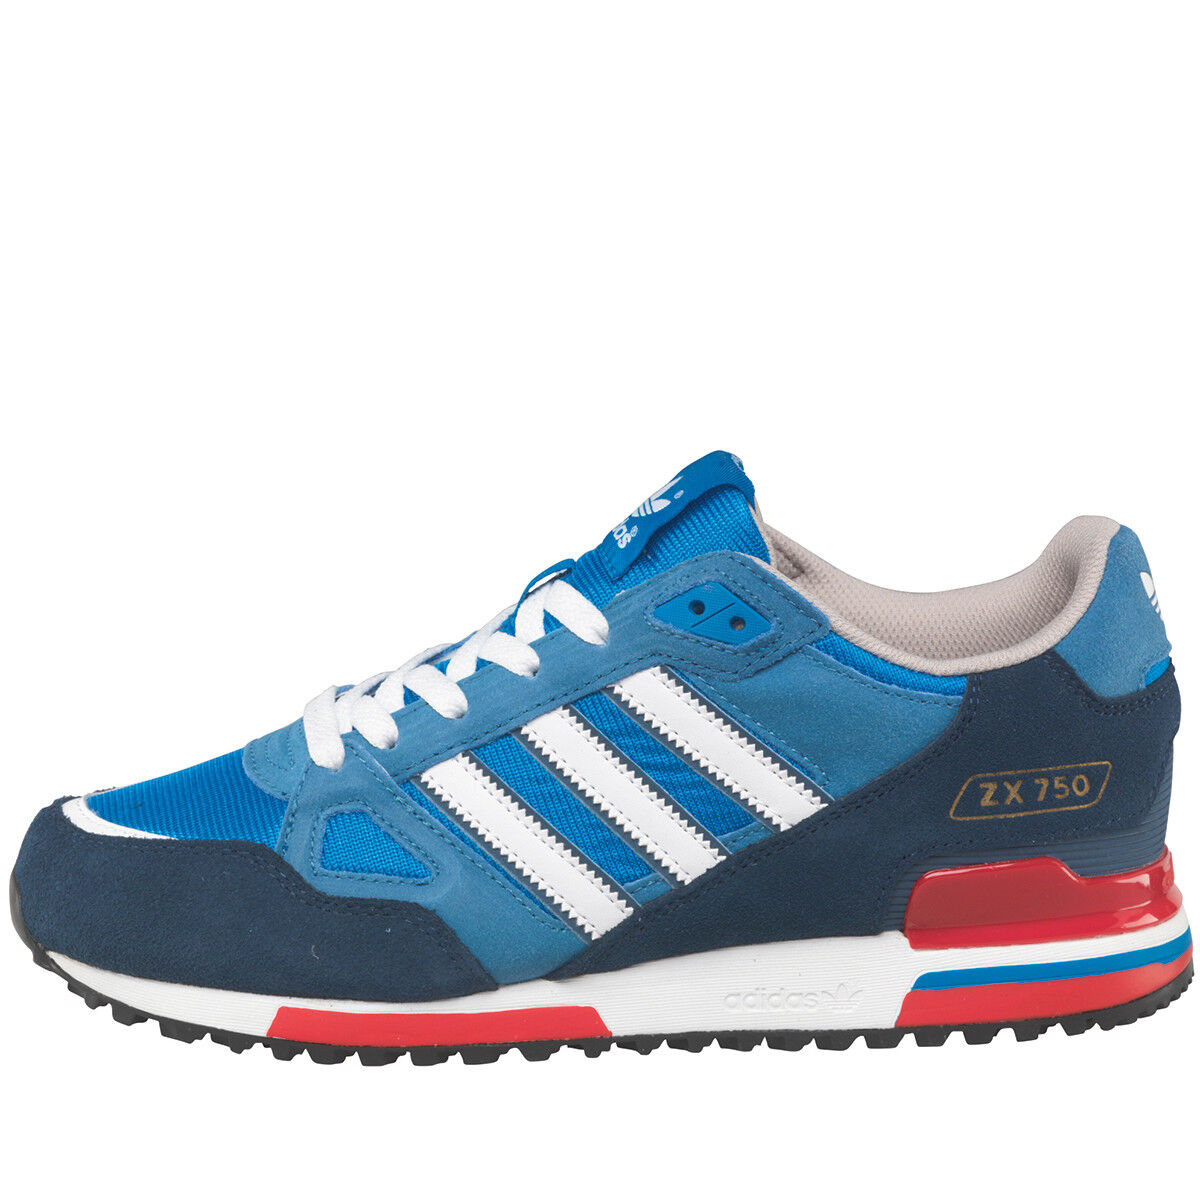 Adidas Originals ZX750 Pour Homme Baskets G96718 UK8 OG AQUA 8000 Torsion Eqt Charlie